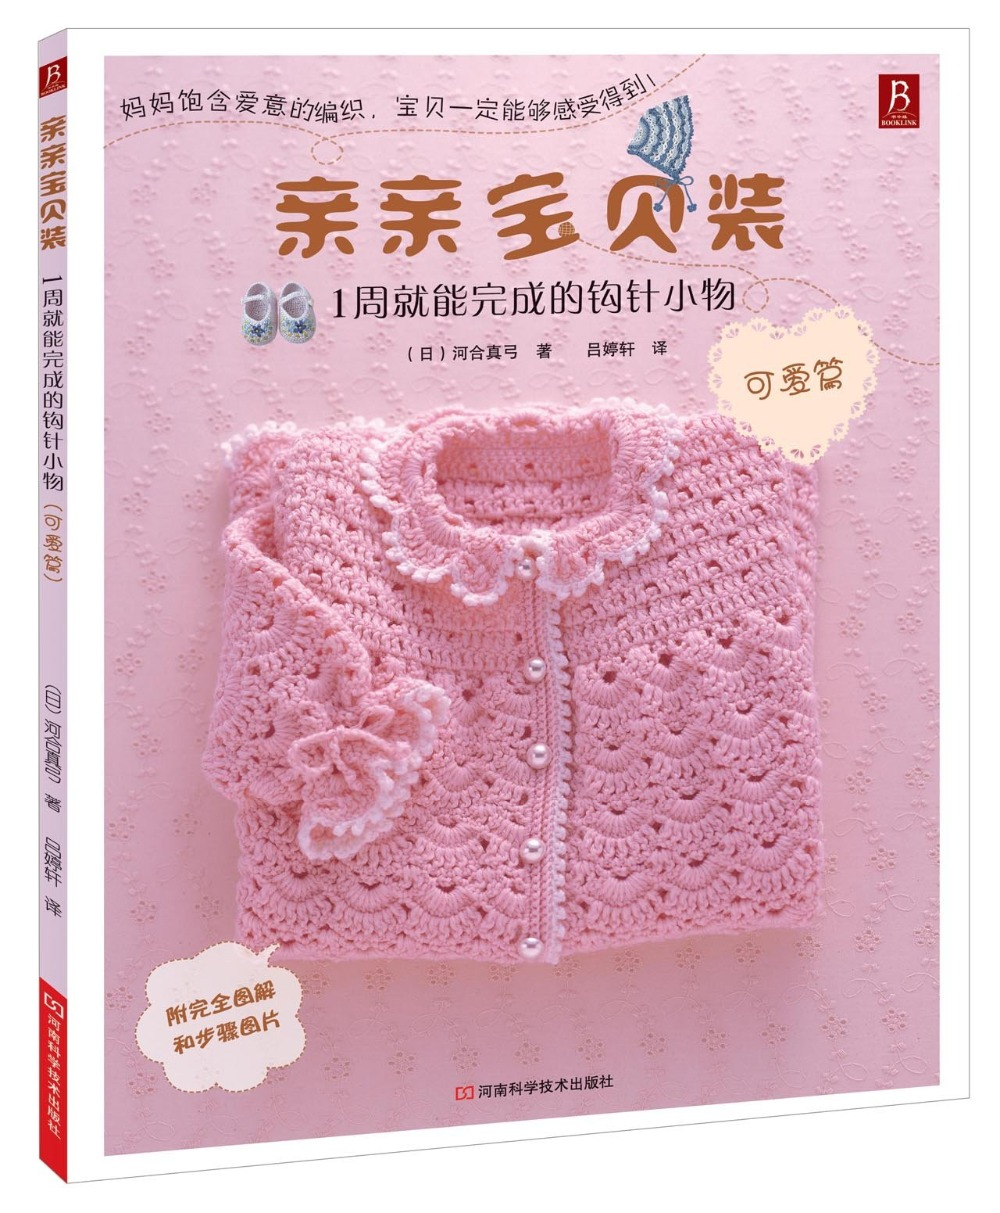 Chinese Knitting Book A Small Crochet Hook That Can Be Completed In 1 Weeks For Kids Baby